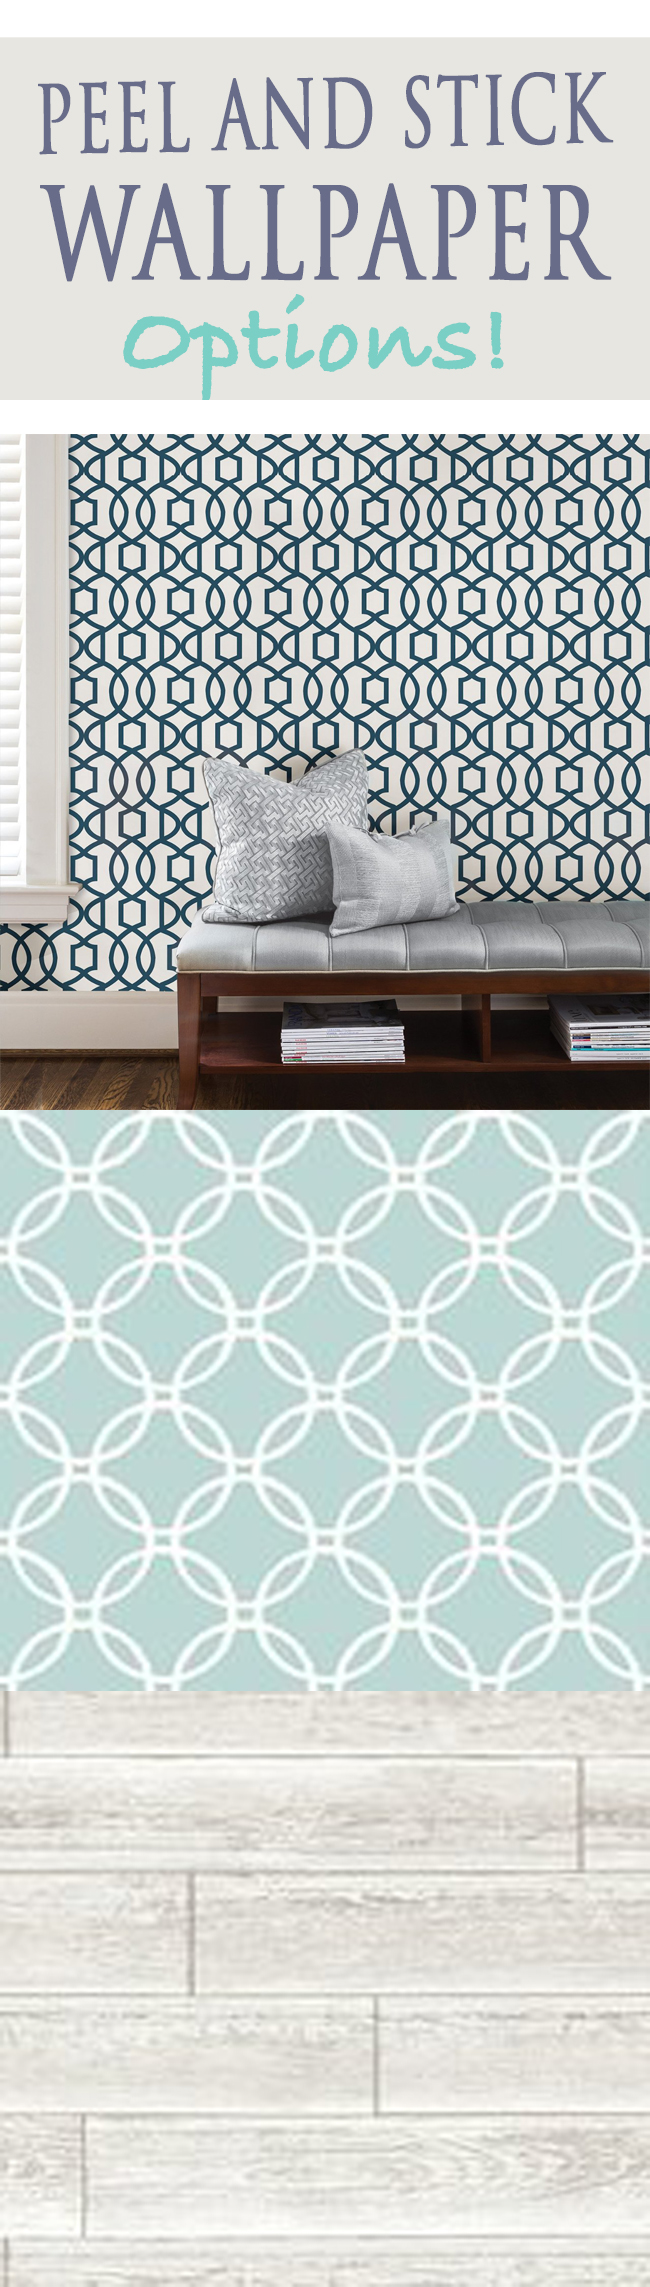 Peel and Stick Wallpaper Options